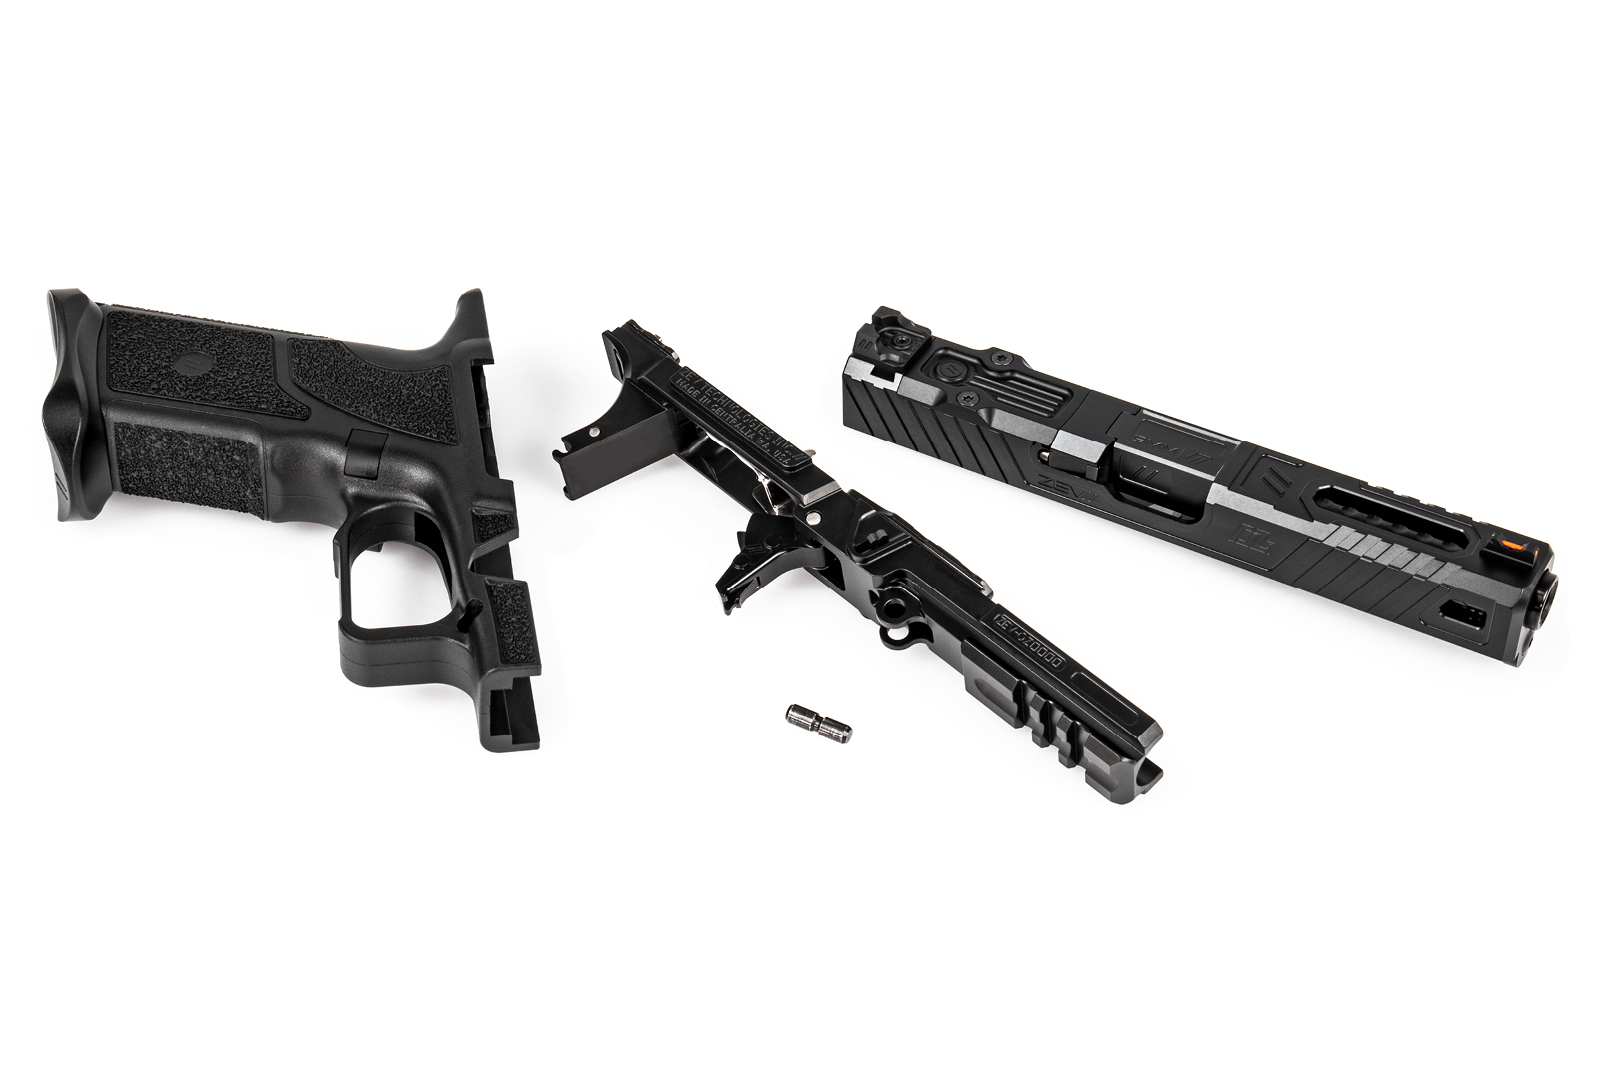 OZ9-Pistol-Standard-Black-Slide-Black-Barrel_media-5[1].jpg